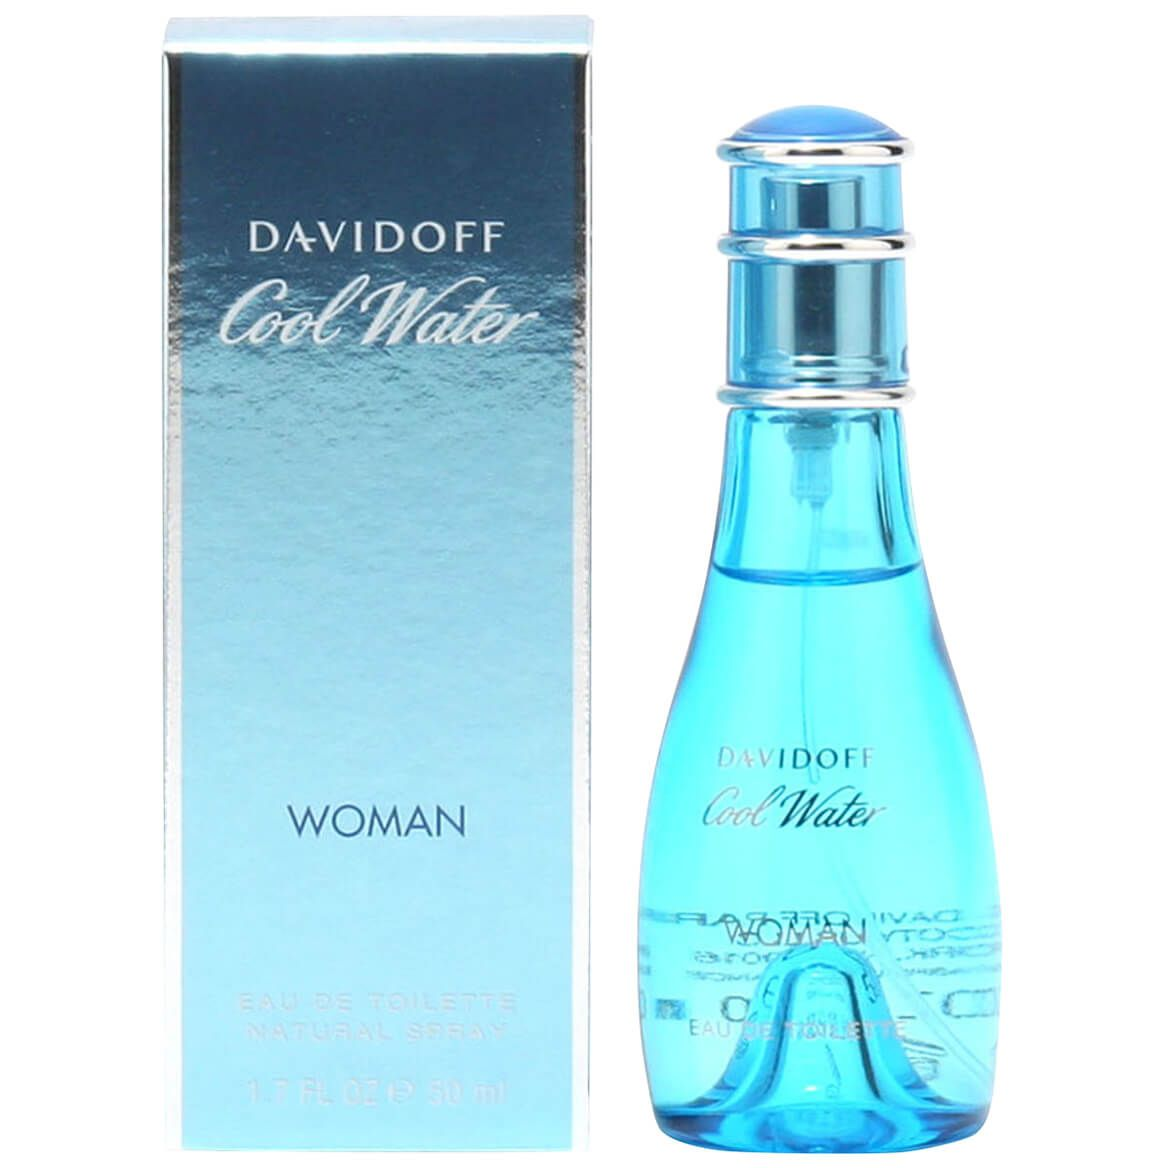 Cool Water Woman by Davidoff EDT Spray-350286